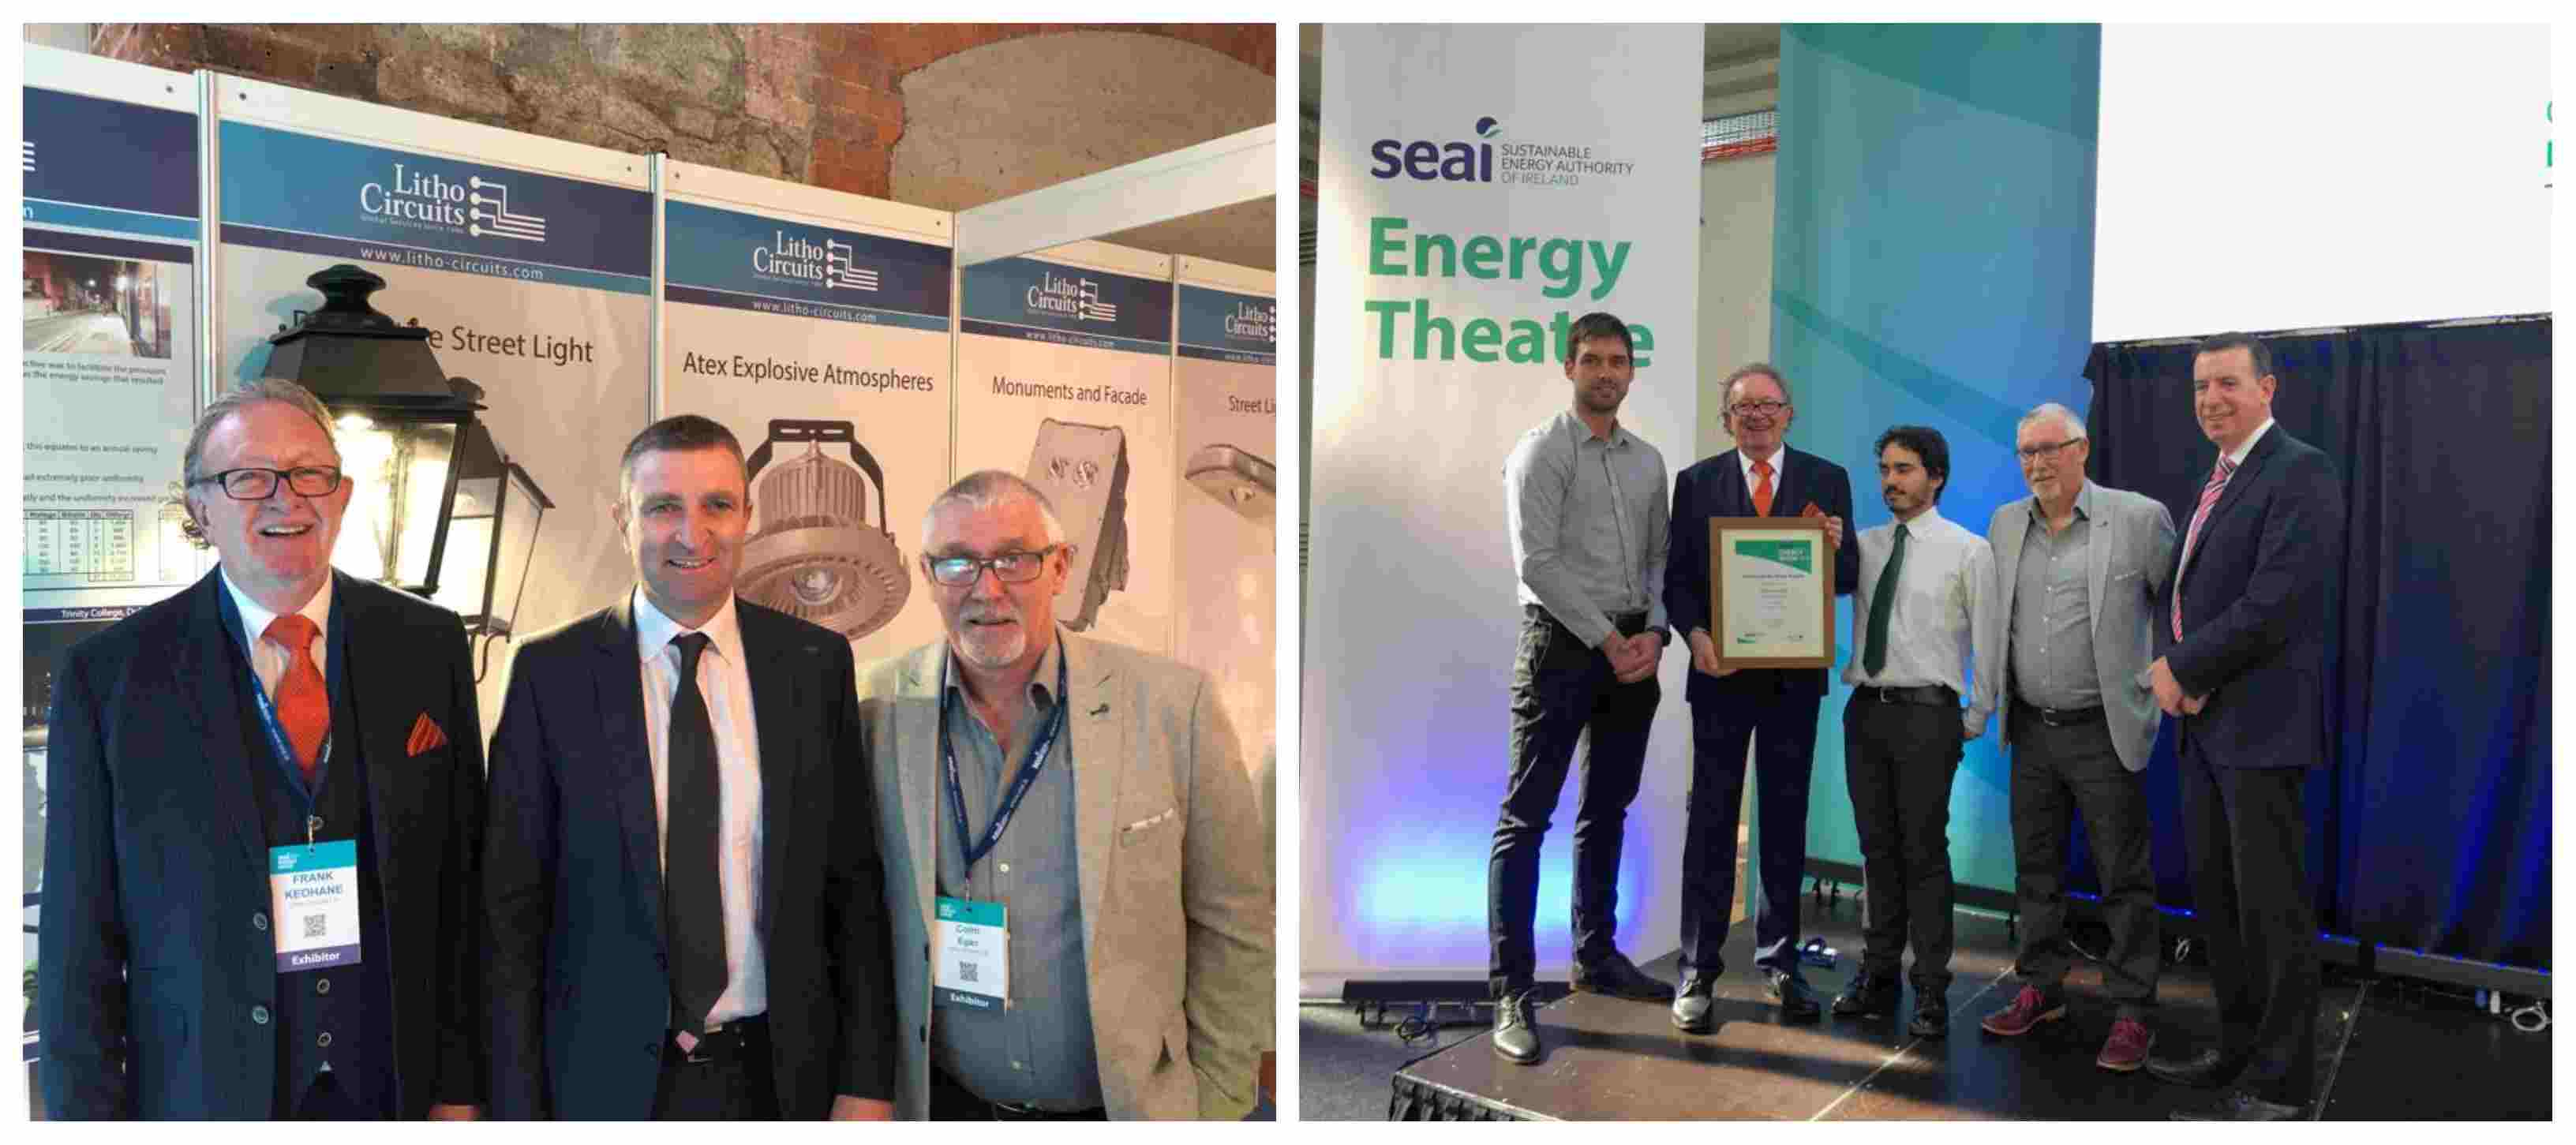 Winner at the SEAI Energy Show for 3rd Year in a Row litho circuits